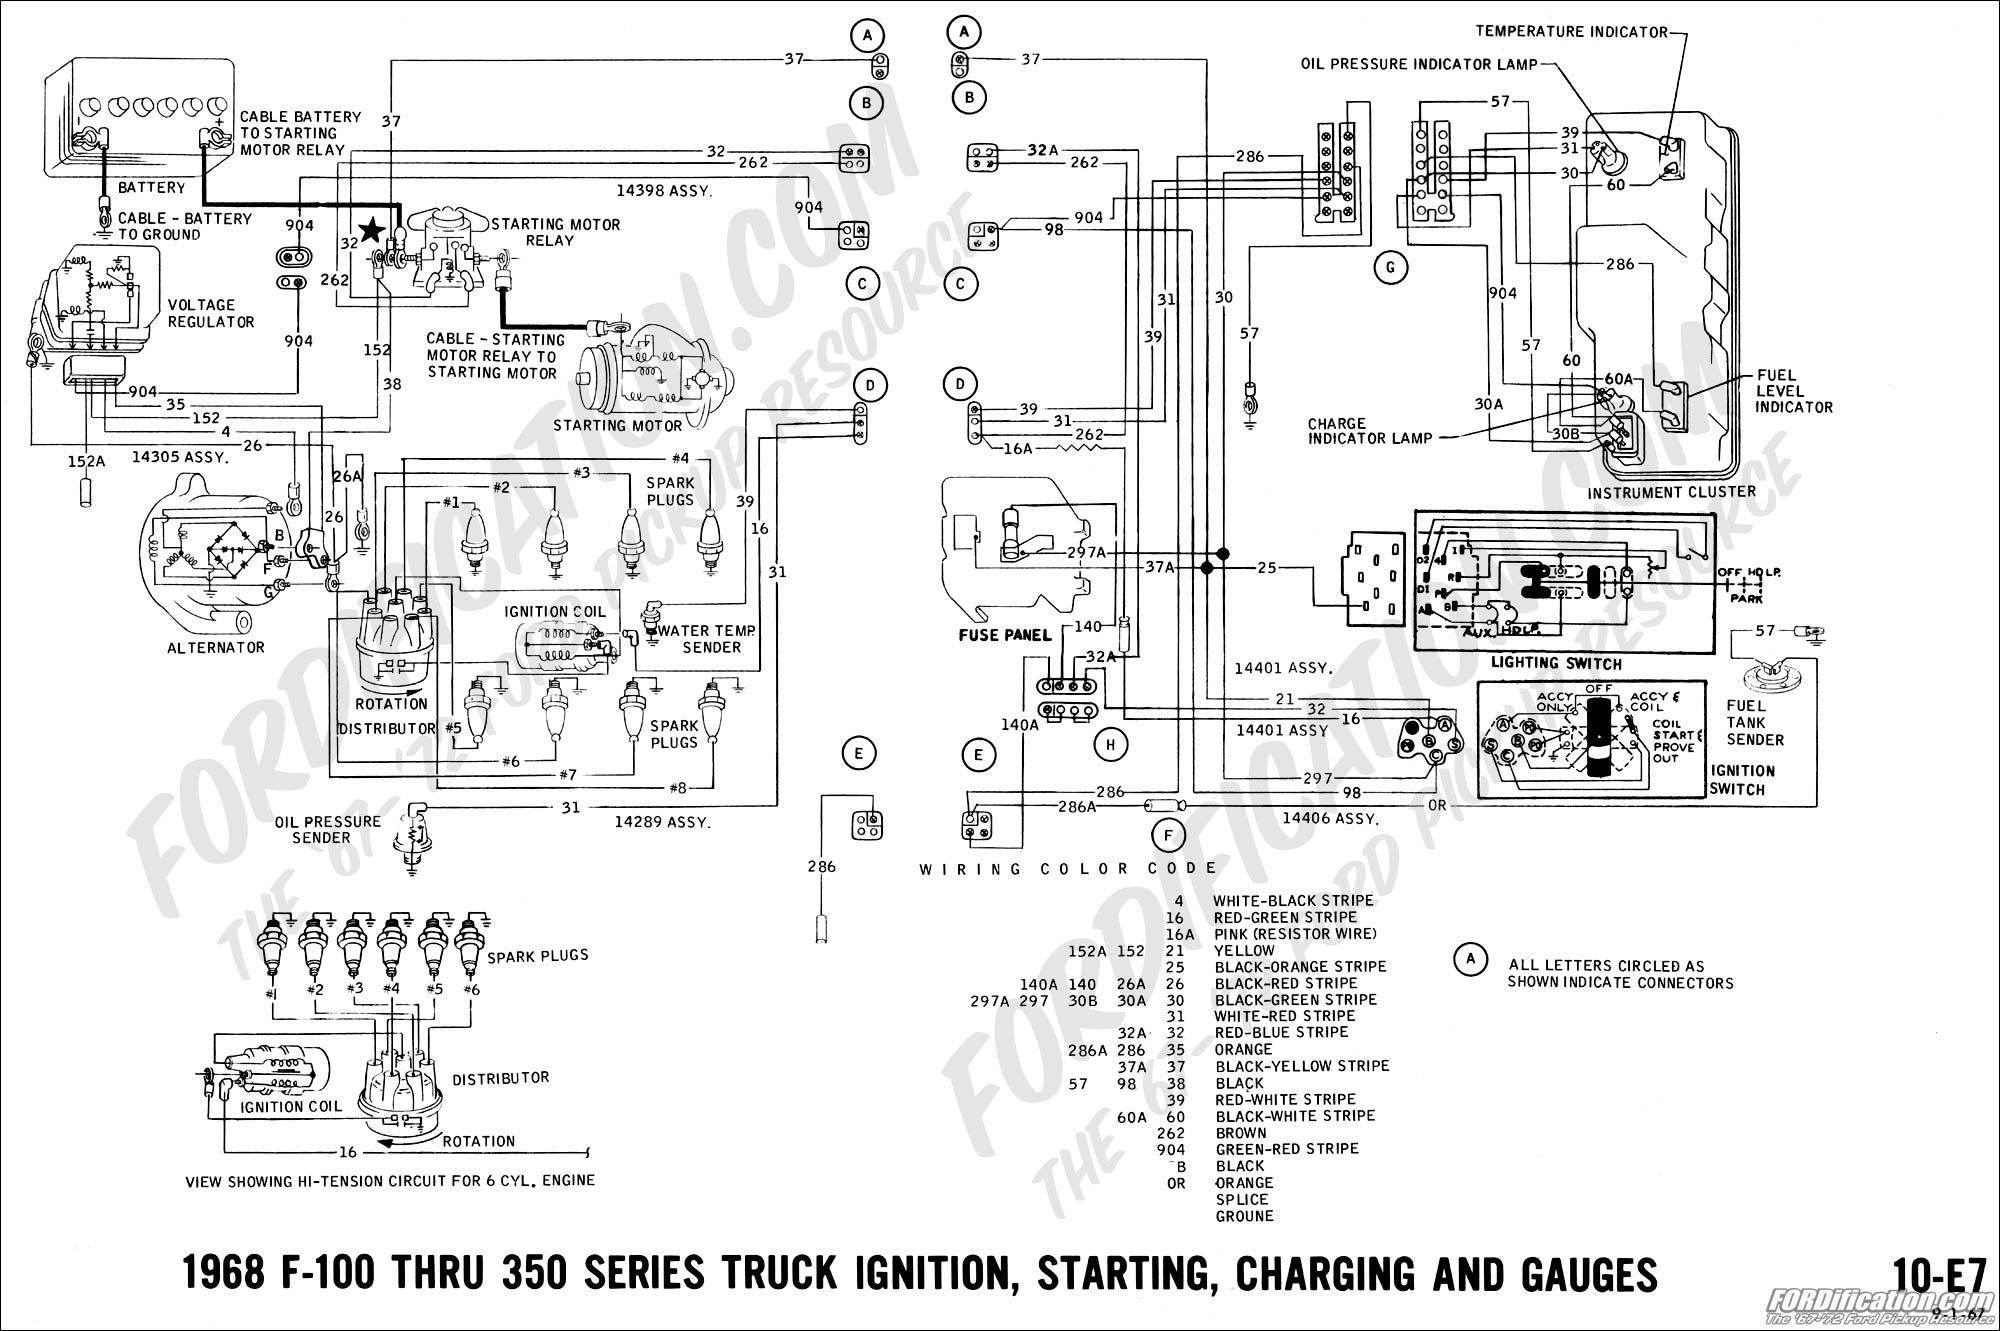 68 09 ford truck technical drawings and schematics section h wiring 1999 F150 Radio Wiring Diagram at pacquiaovsvargaslive.co